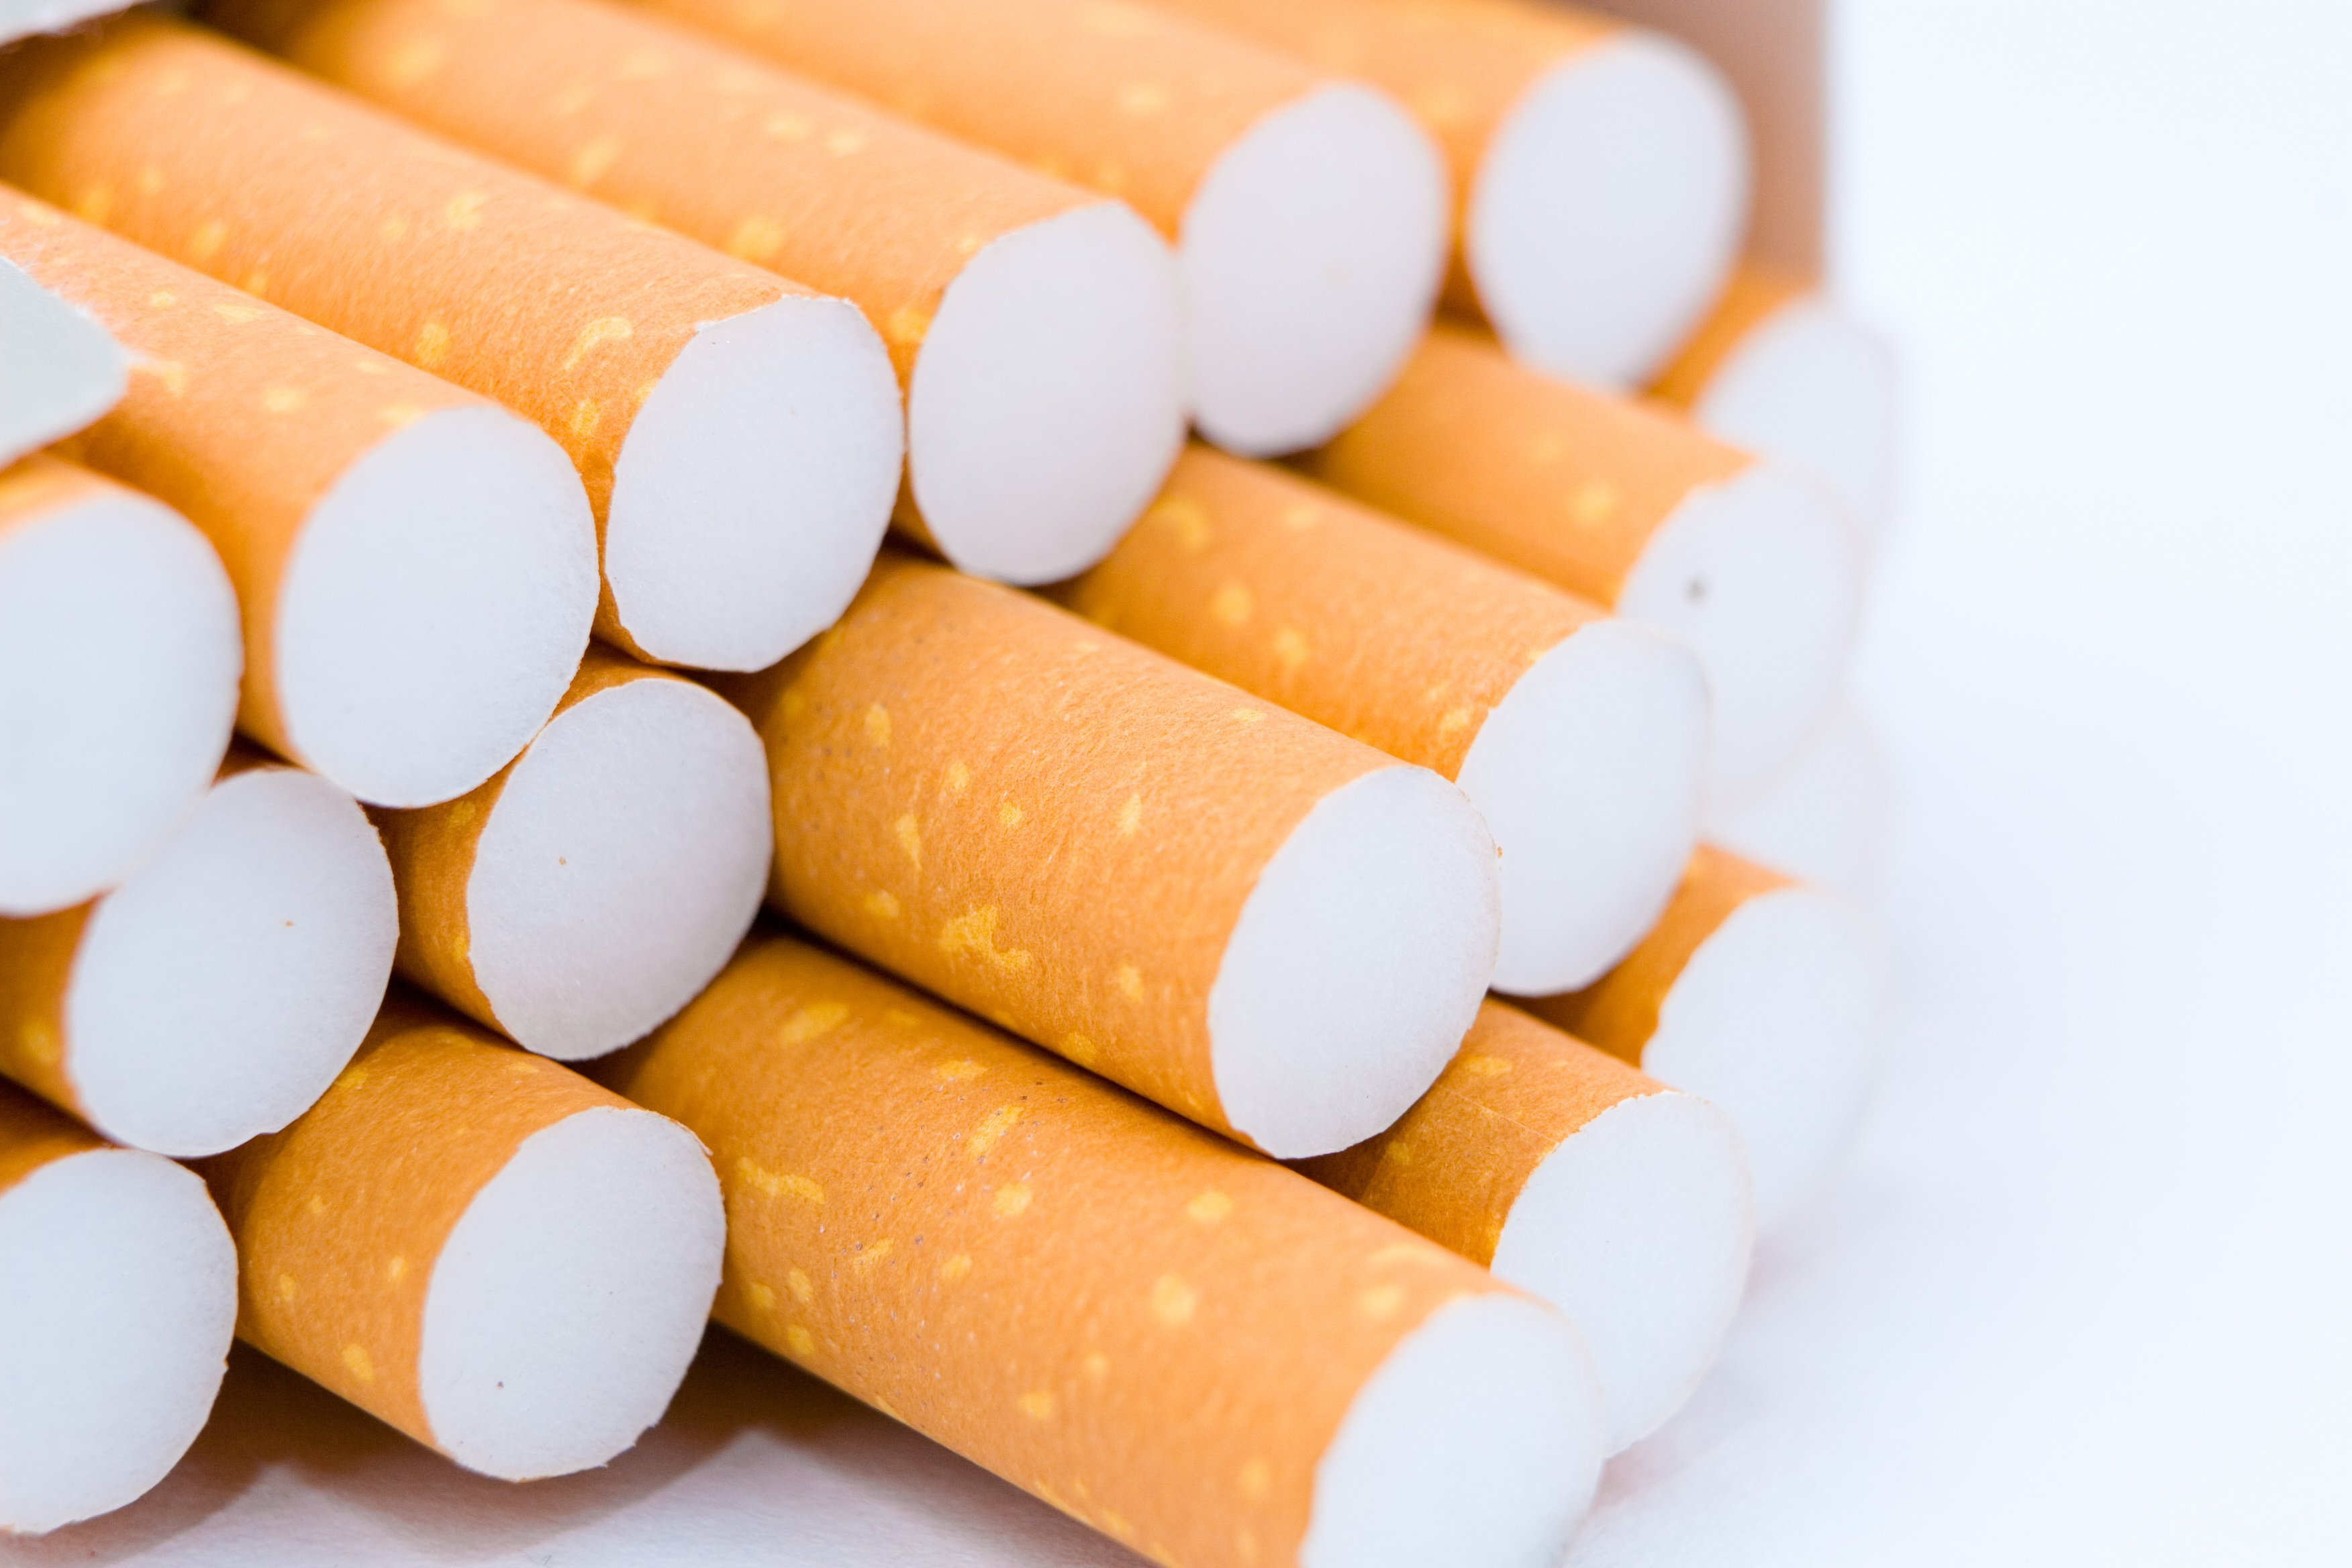 Cigarette smoking falls to record low in the United States